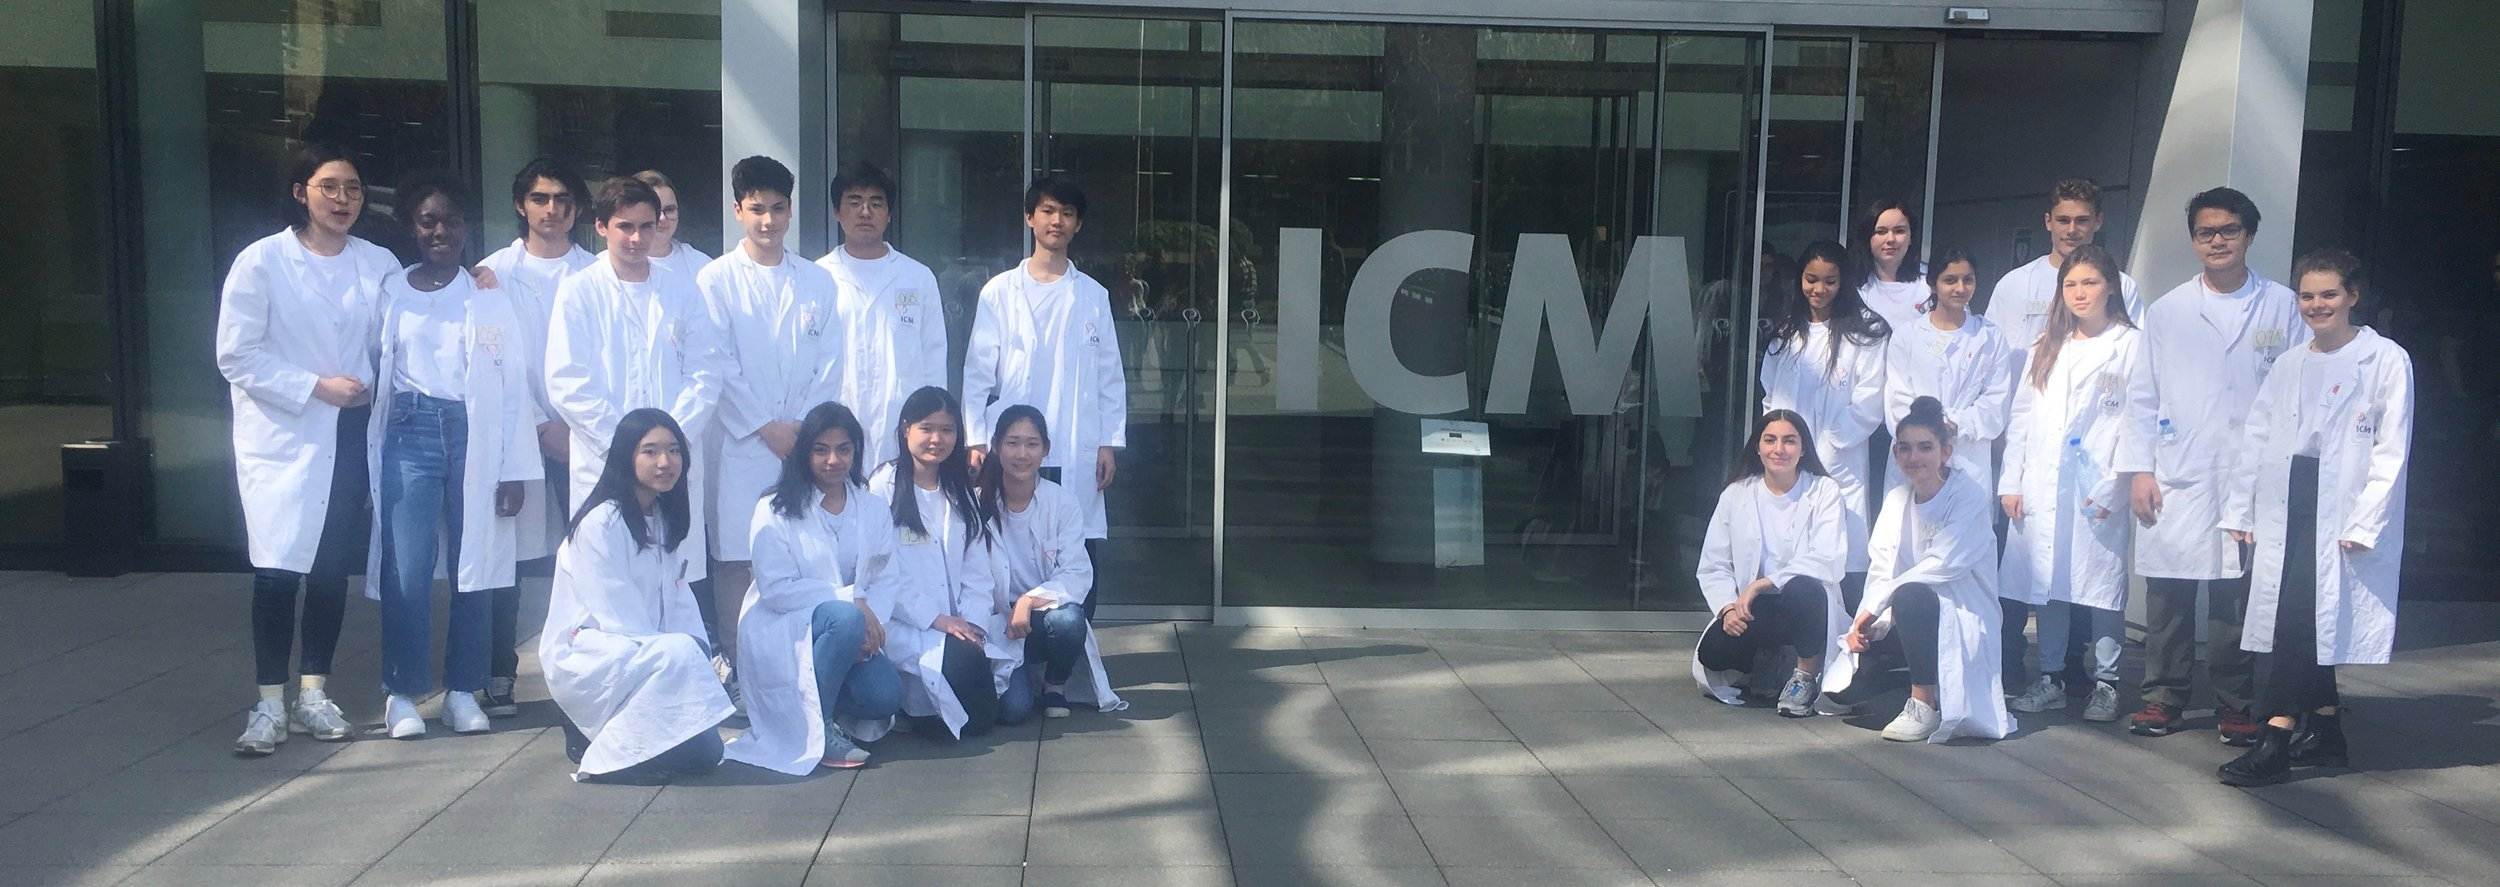 2019 France Brain Bee participants taking a break during the competition at ICM Brain and Spine Institute, 6 April 2019. Thanks ICM for hosting and sponsoring!